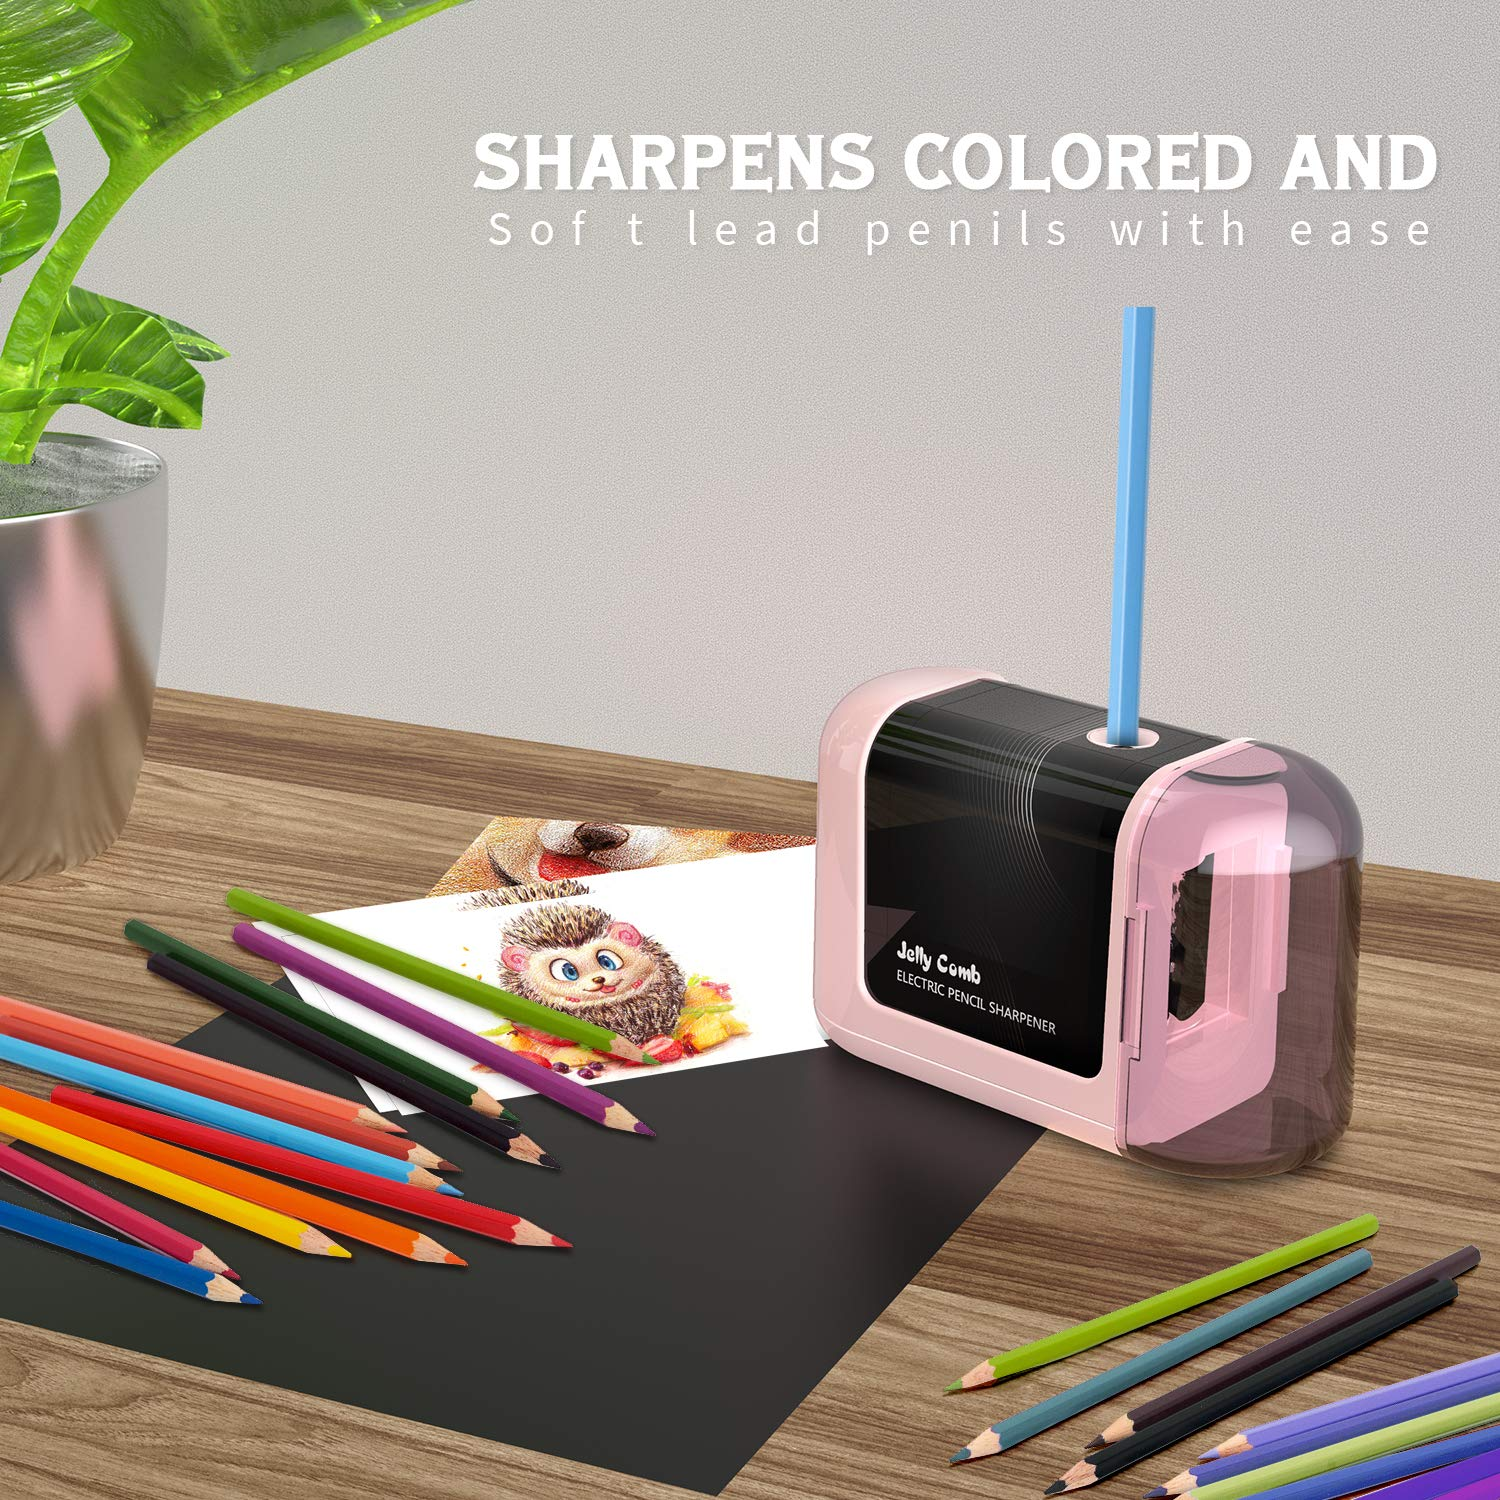 No Cord Electric Pencil Sharpener Designed for Classroom,Home Pink Office Drawing, Coloring Jelly Comb Battery Operated Pencil Sharpener Aritist Ideal for No.2 and Colored Pencils Students